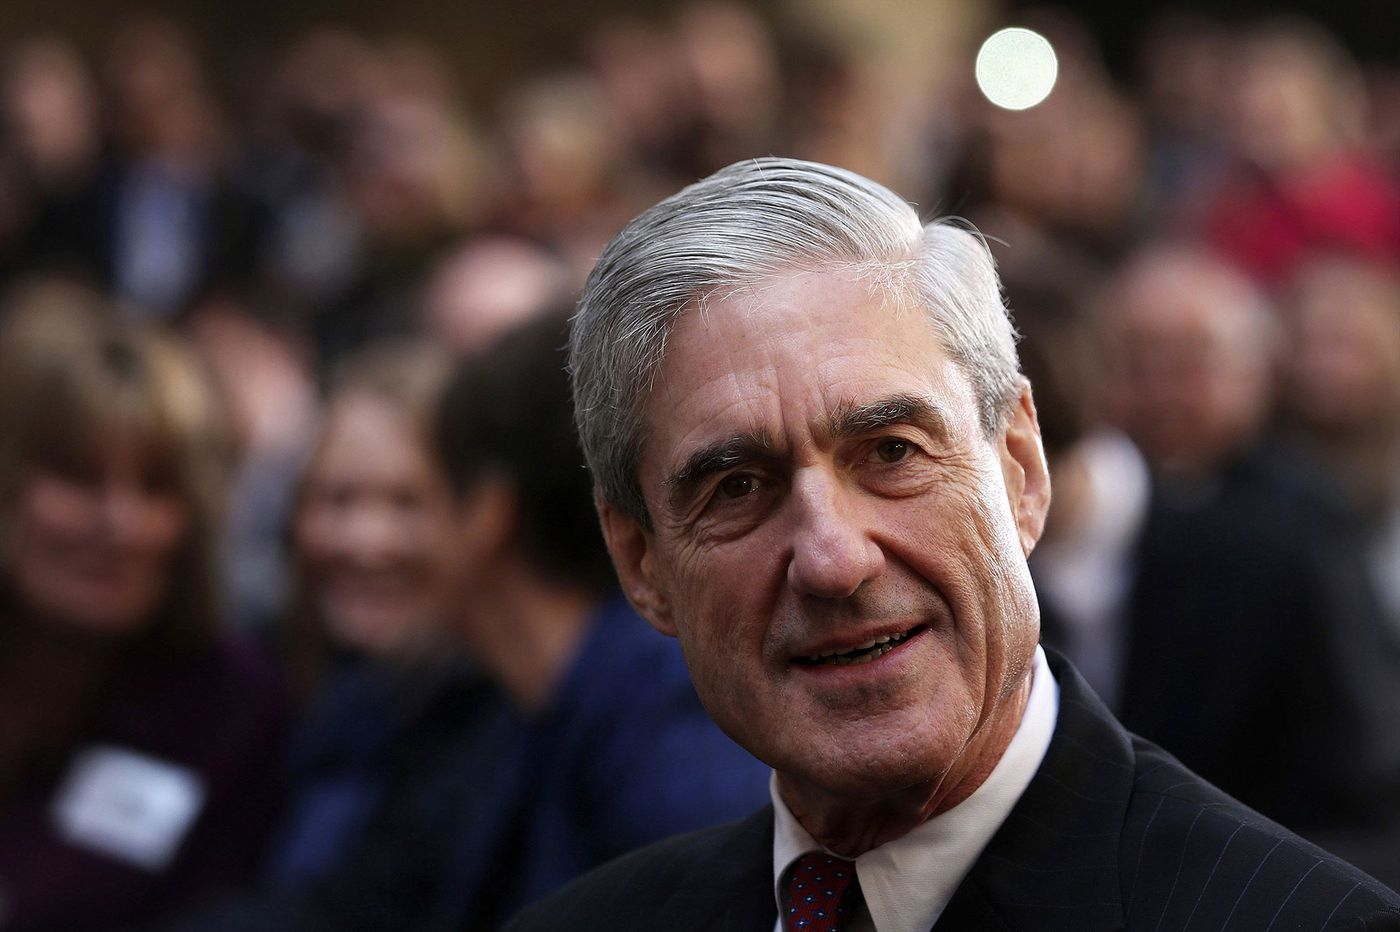 Special Counsel Mueller to speak on Russian Federation probe at 11 a.m